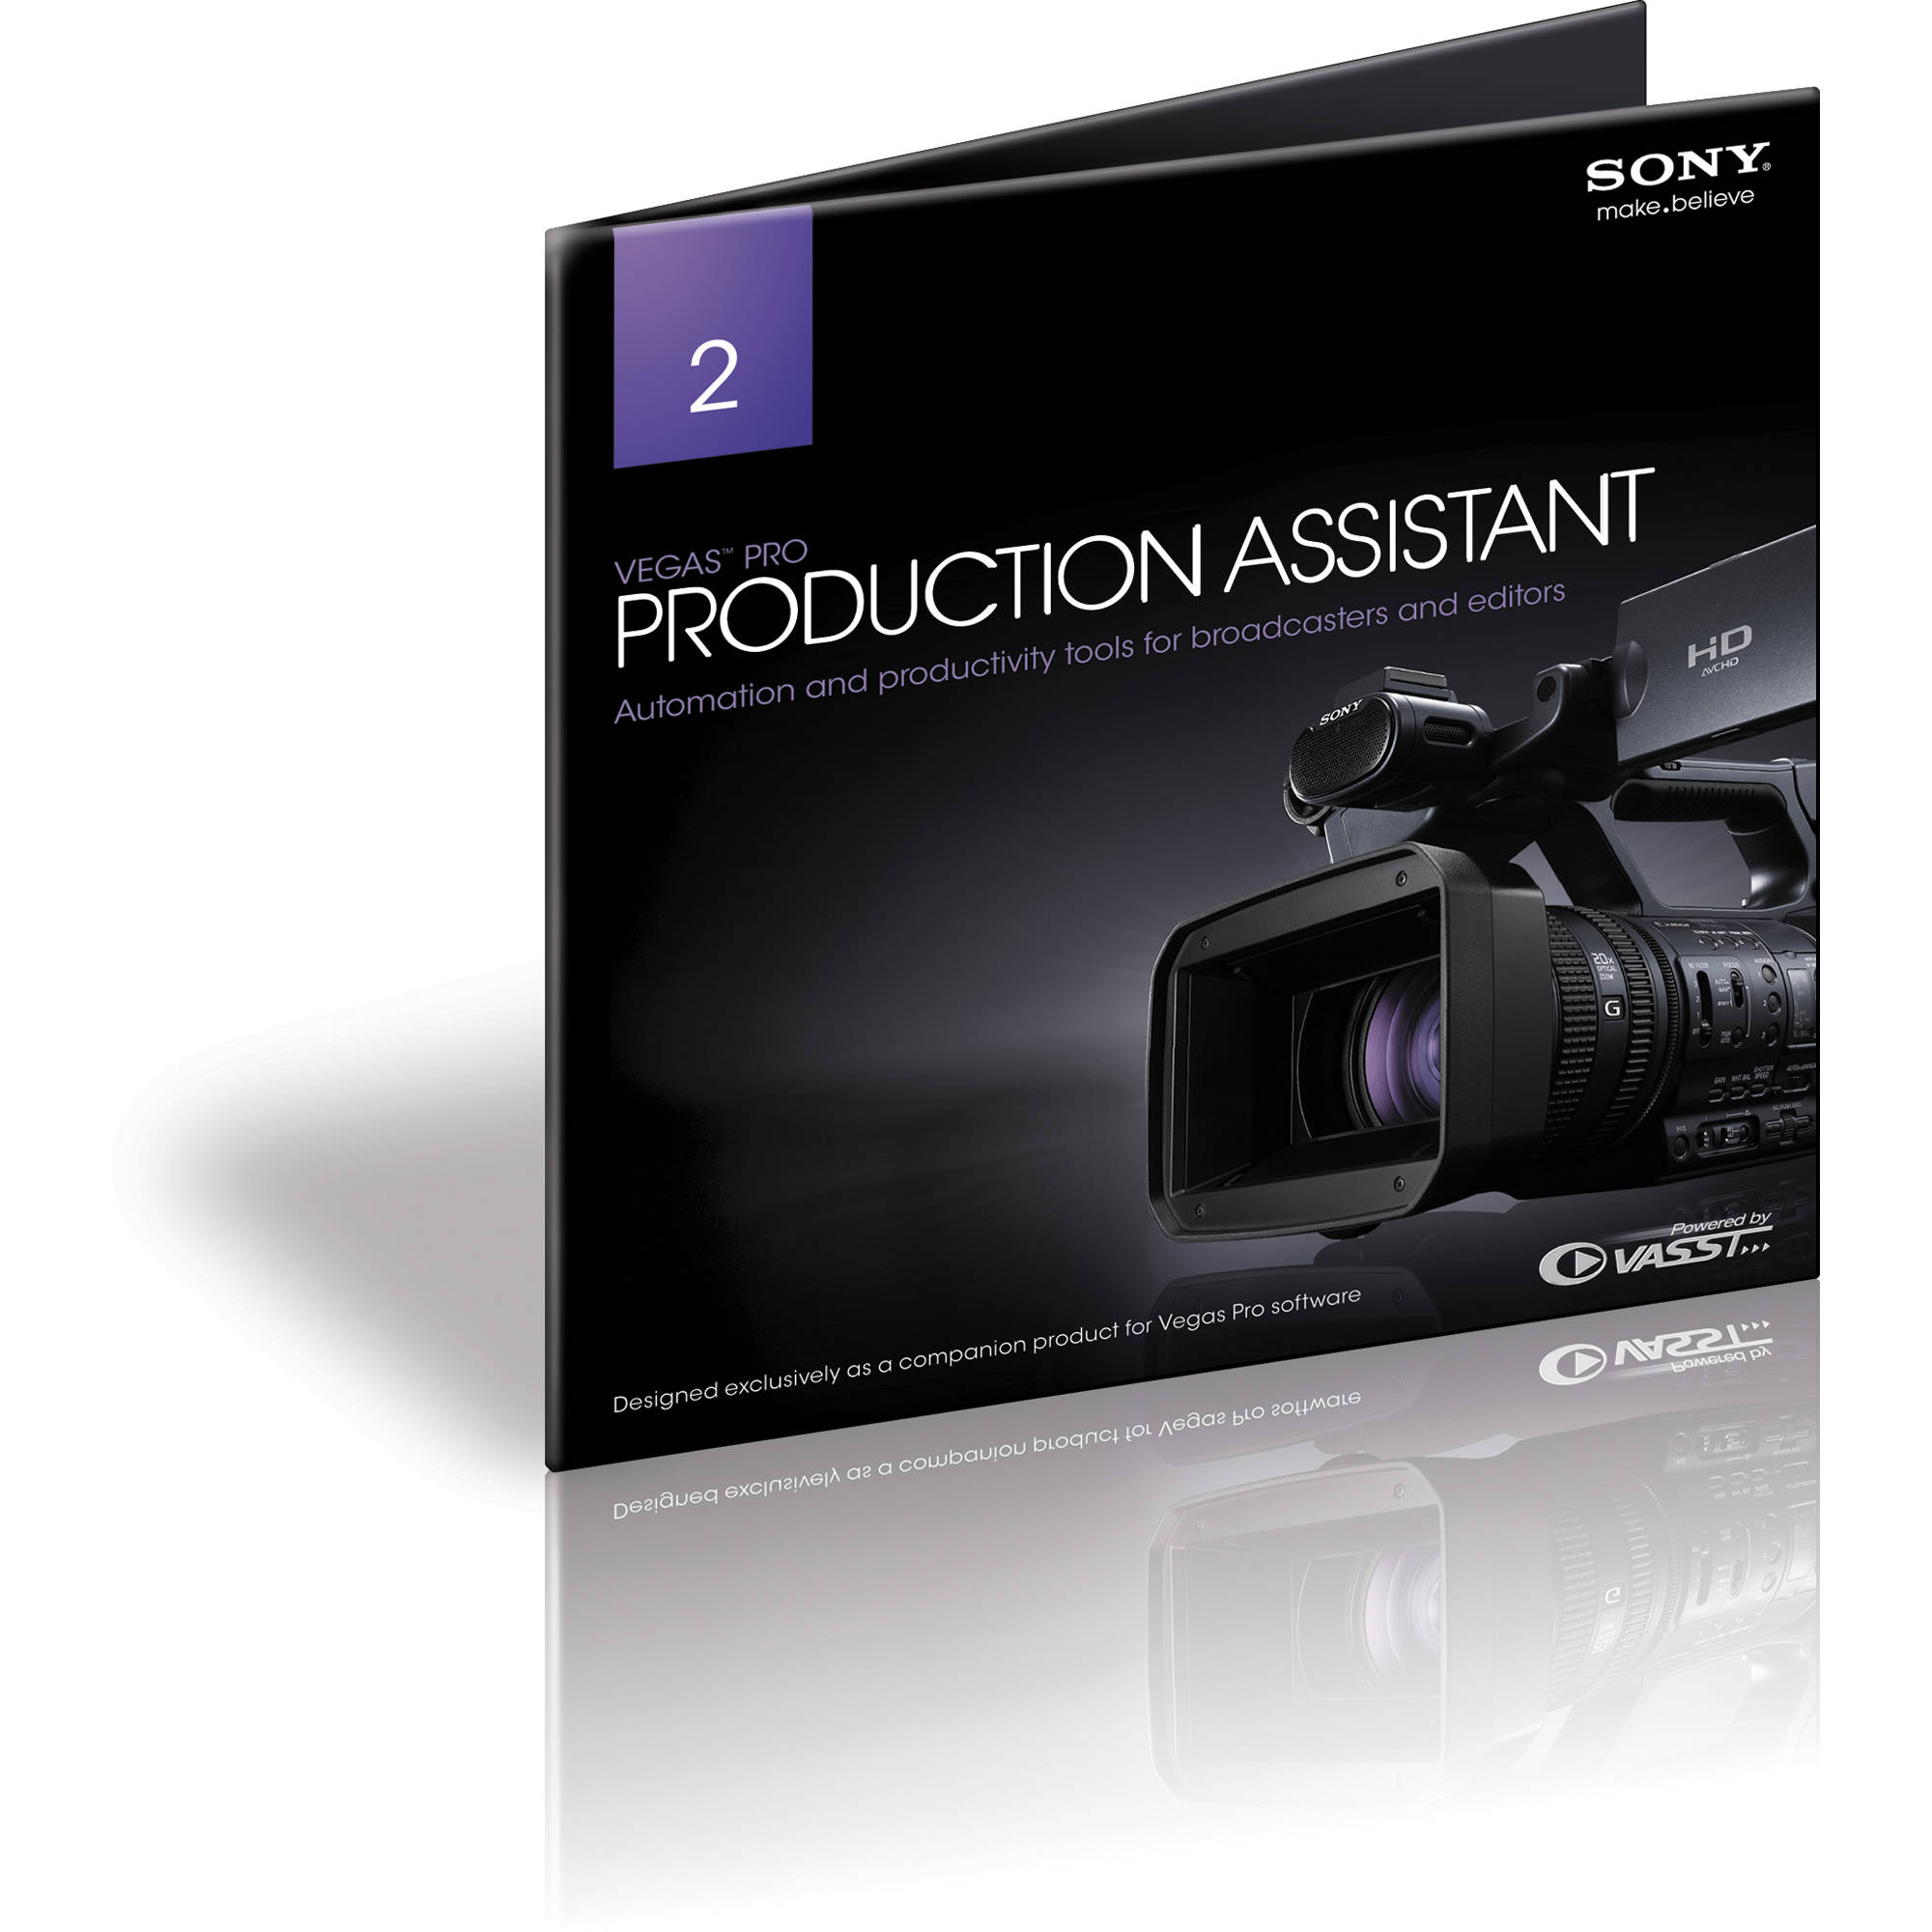 Distinctive Sony Vegas Pro Production Assistant Sony Vegas Pro Production Assistant Sony Vegas Pro Trial Version Sony Vegas Pro Free Trial Windows 10 dpreview Sony Vegas Pro Trial